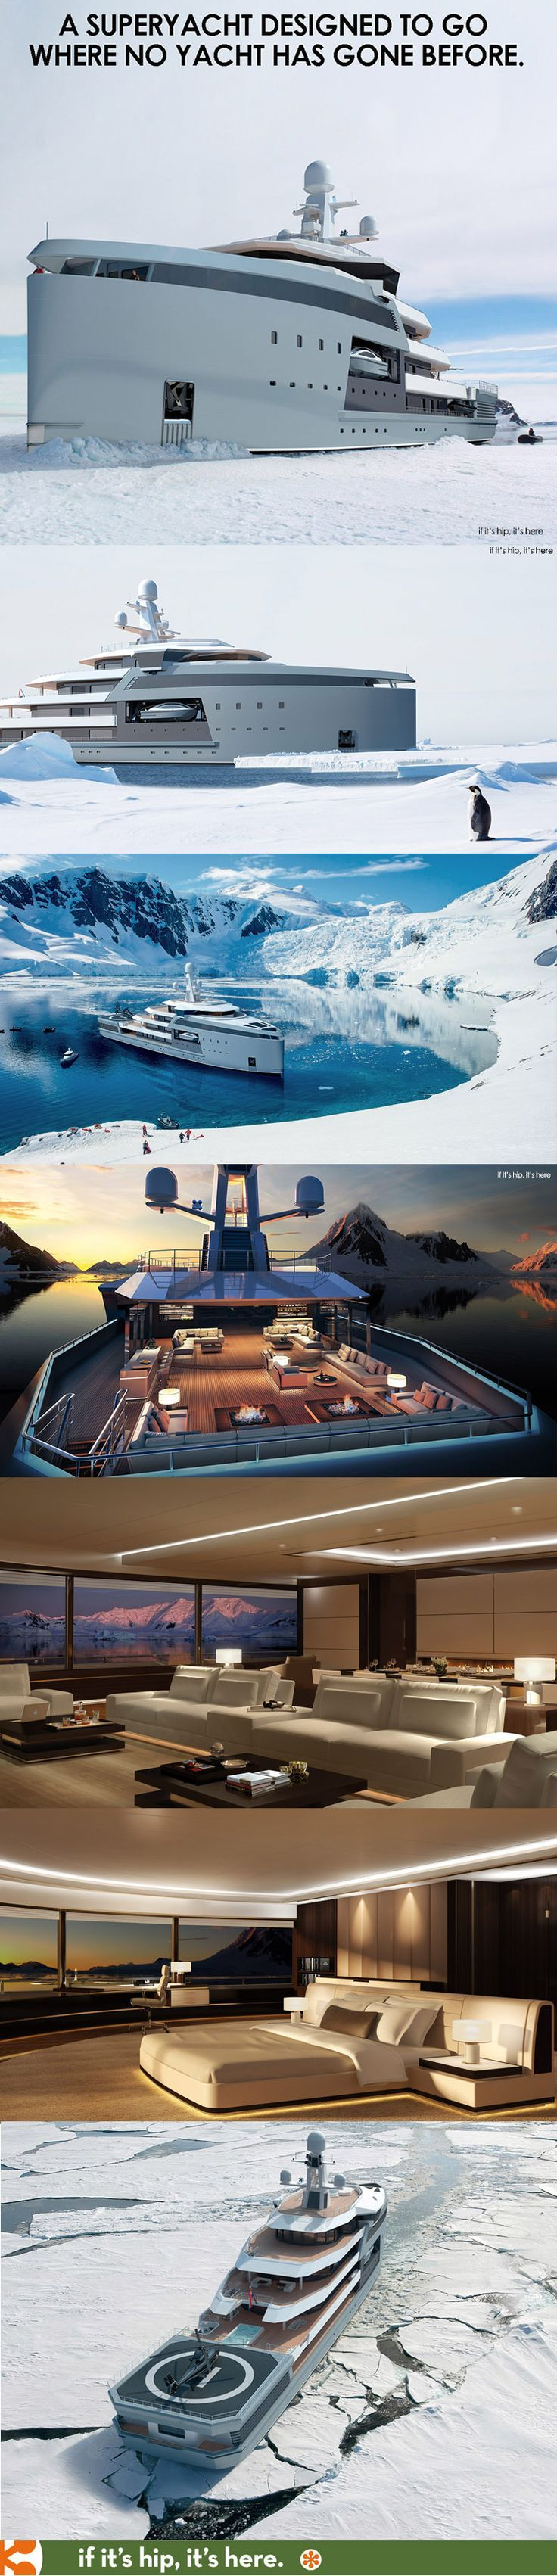 Designed to travel anywhere in the world, even through the polar regions, the Sea Explorer range are expedition yachts with an optimized hull for ice-breaking and a luxurious interior for comfort.